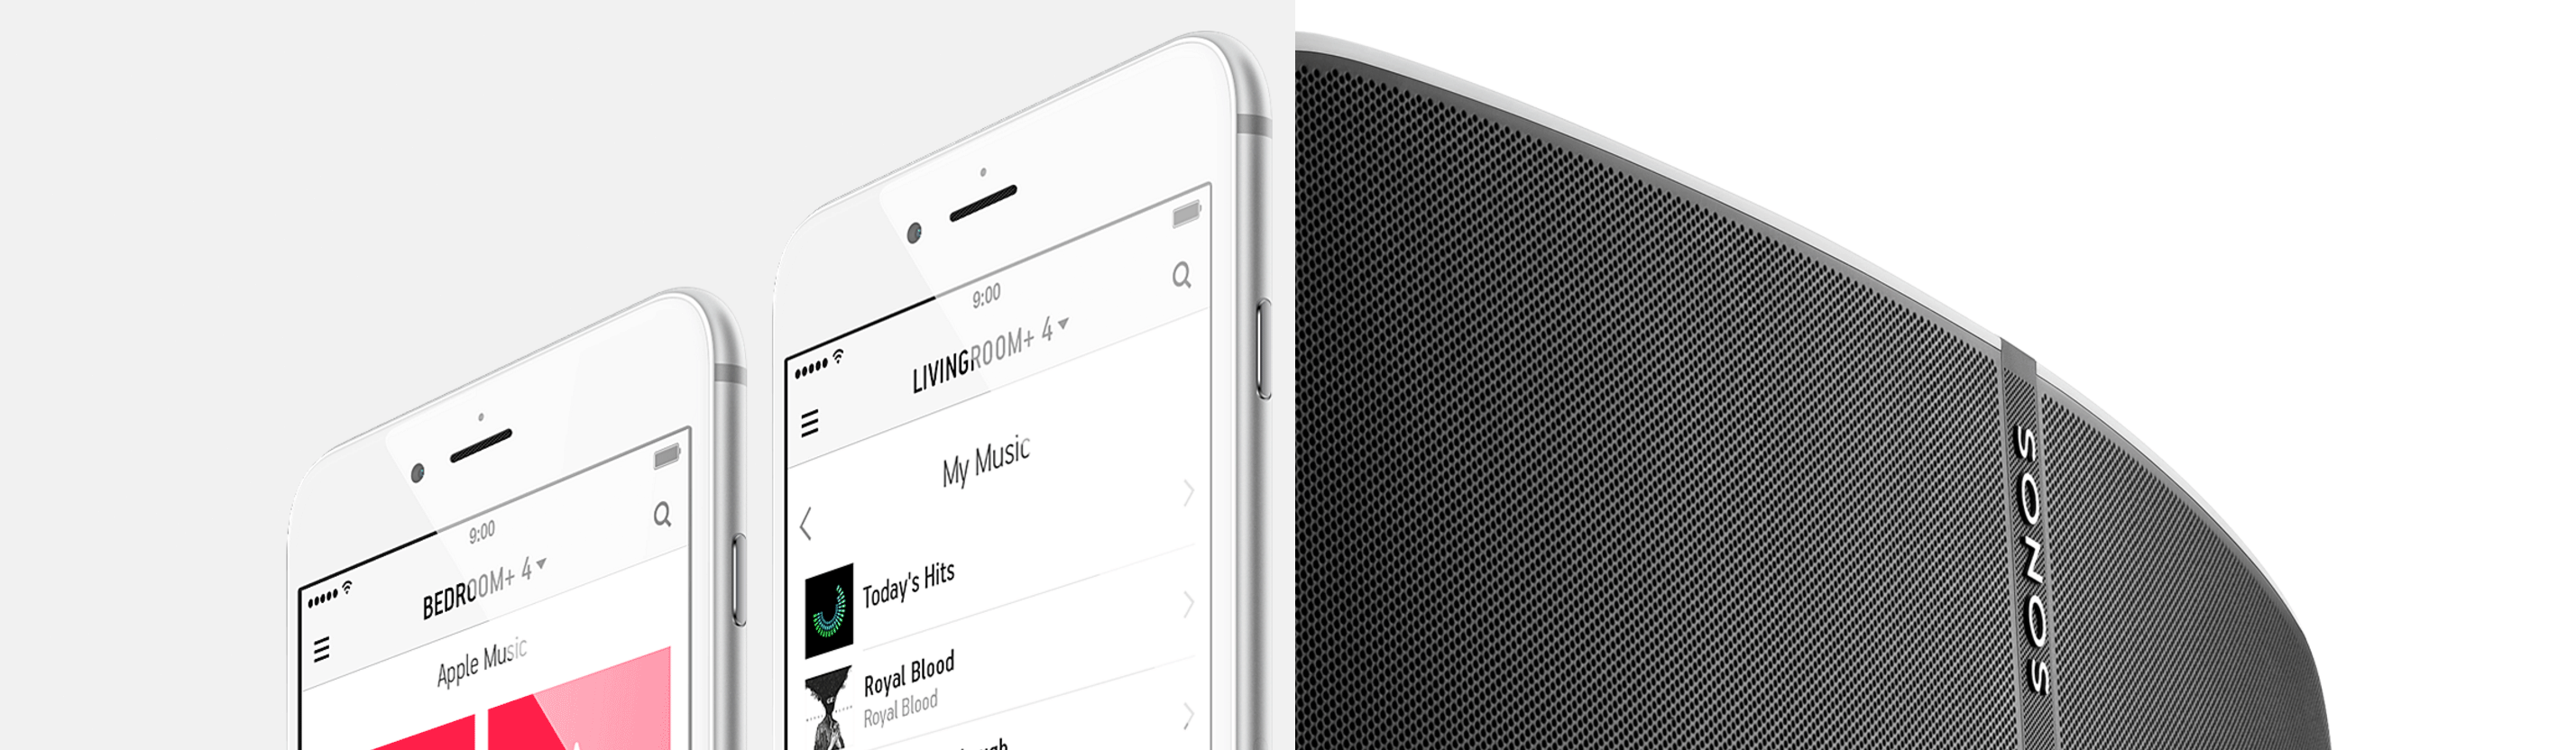 sonos-apple-play